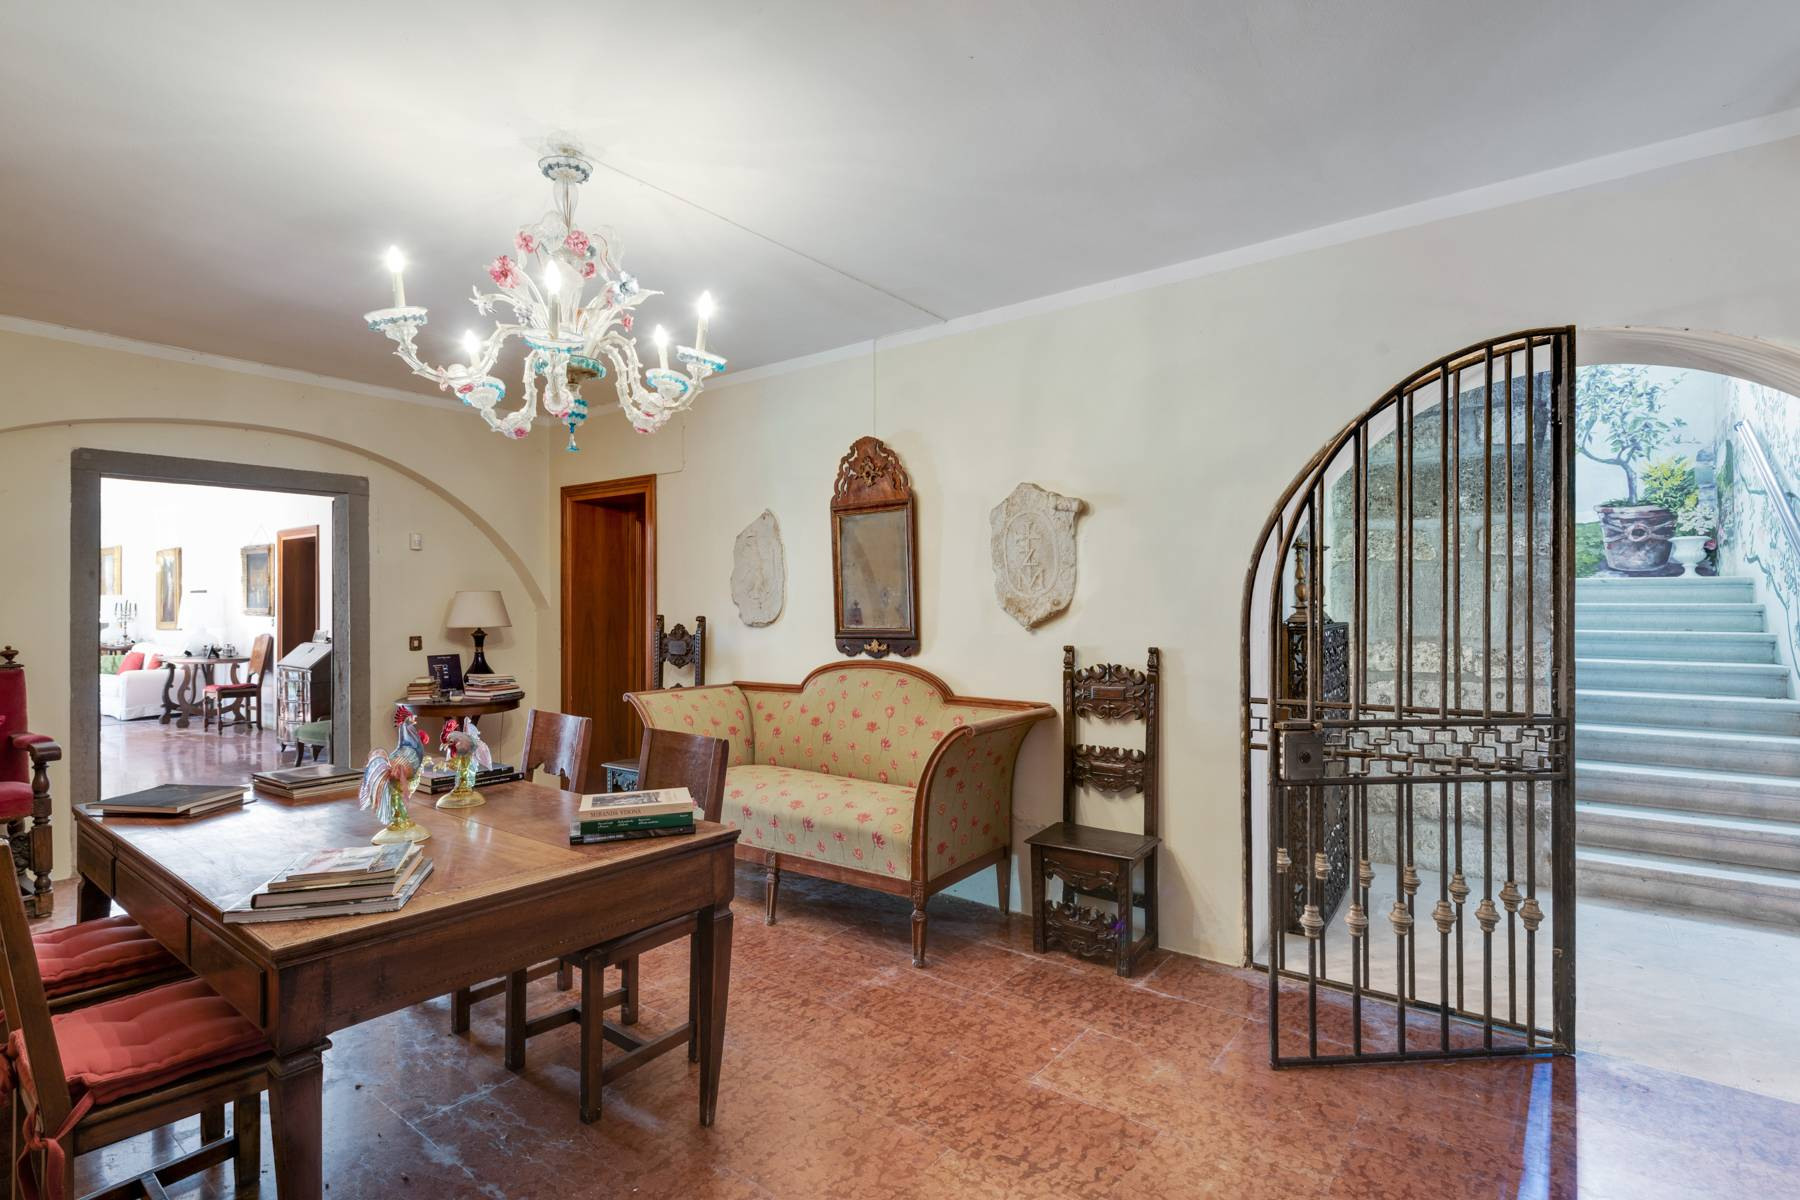 Stunning 18th century villa with 45 hectares of land - 27